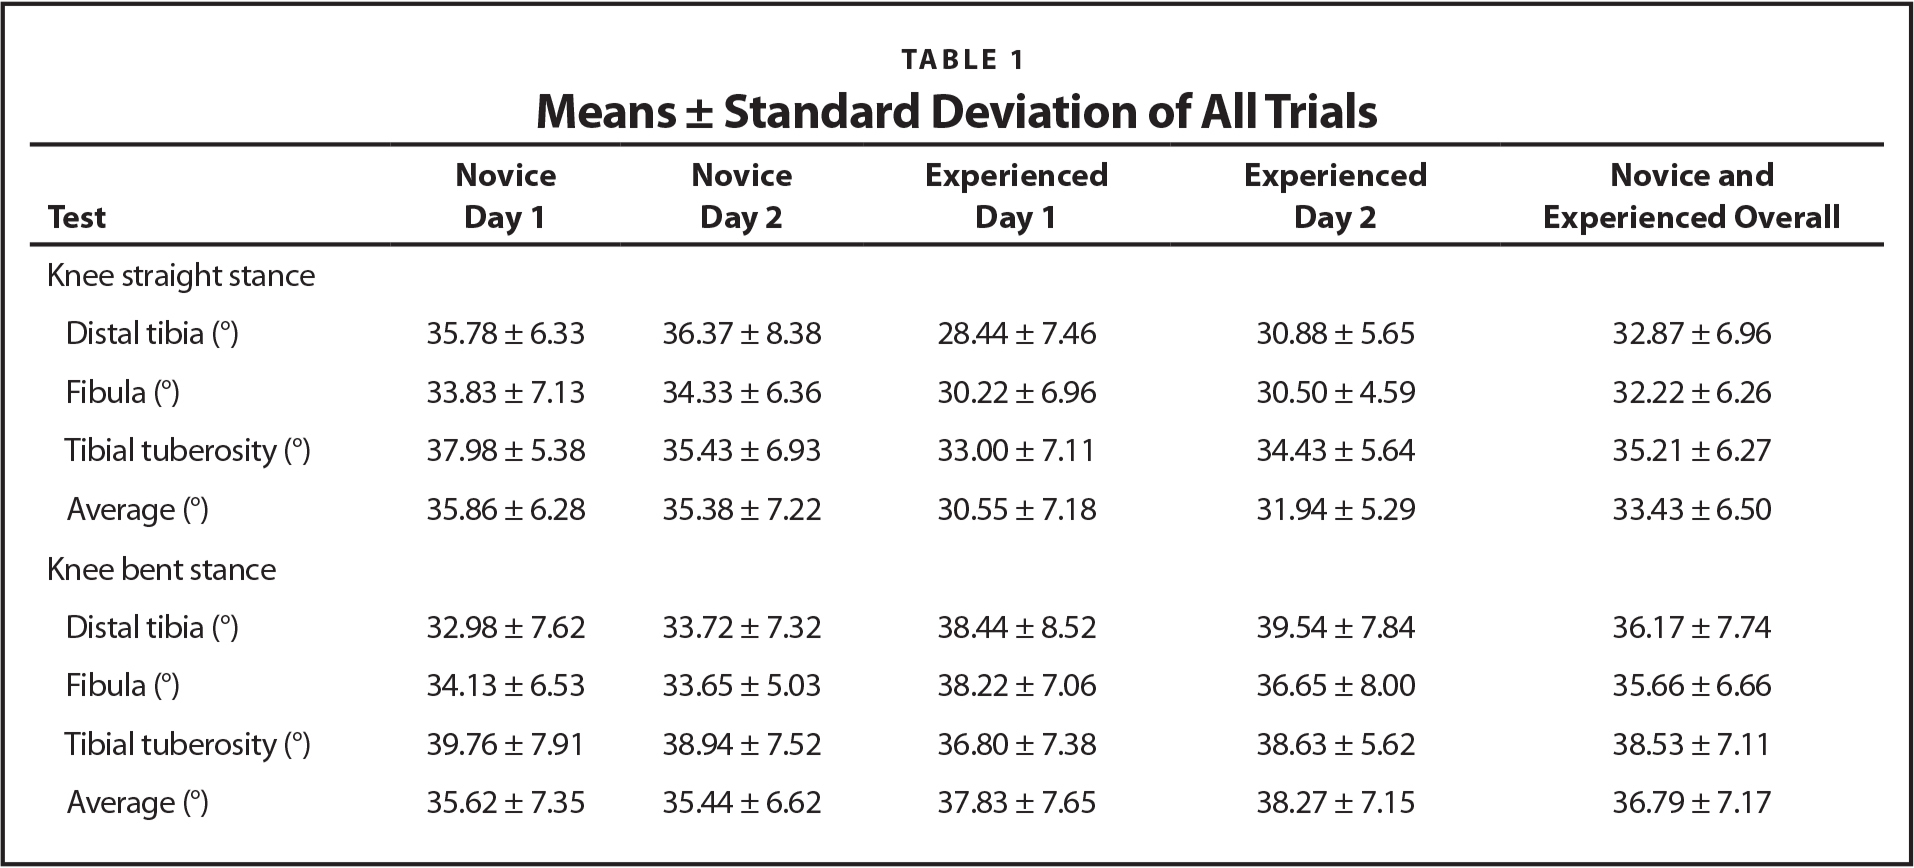 Means ± Standard Deviation of All Trials